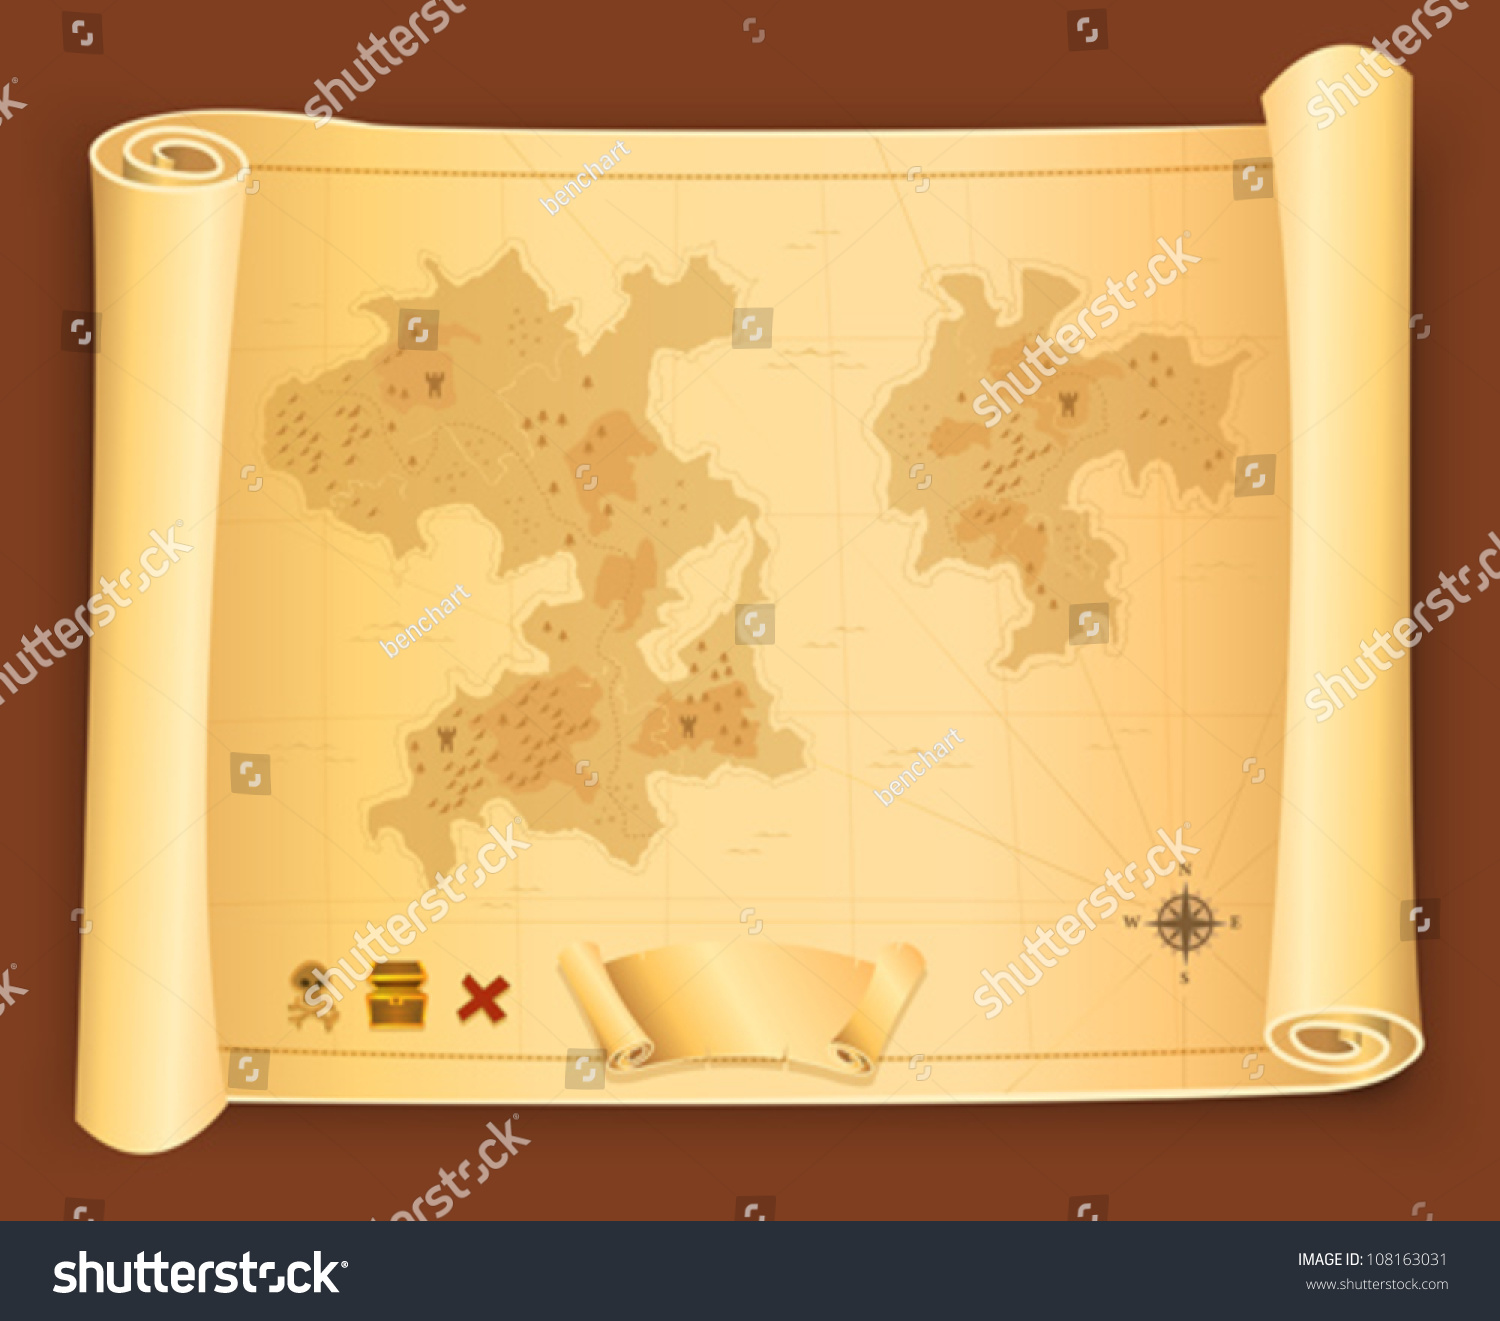 Antique Scroll Map: Treasure Map On Parchment Scroll/ Illustration Of A